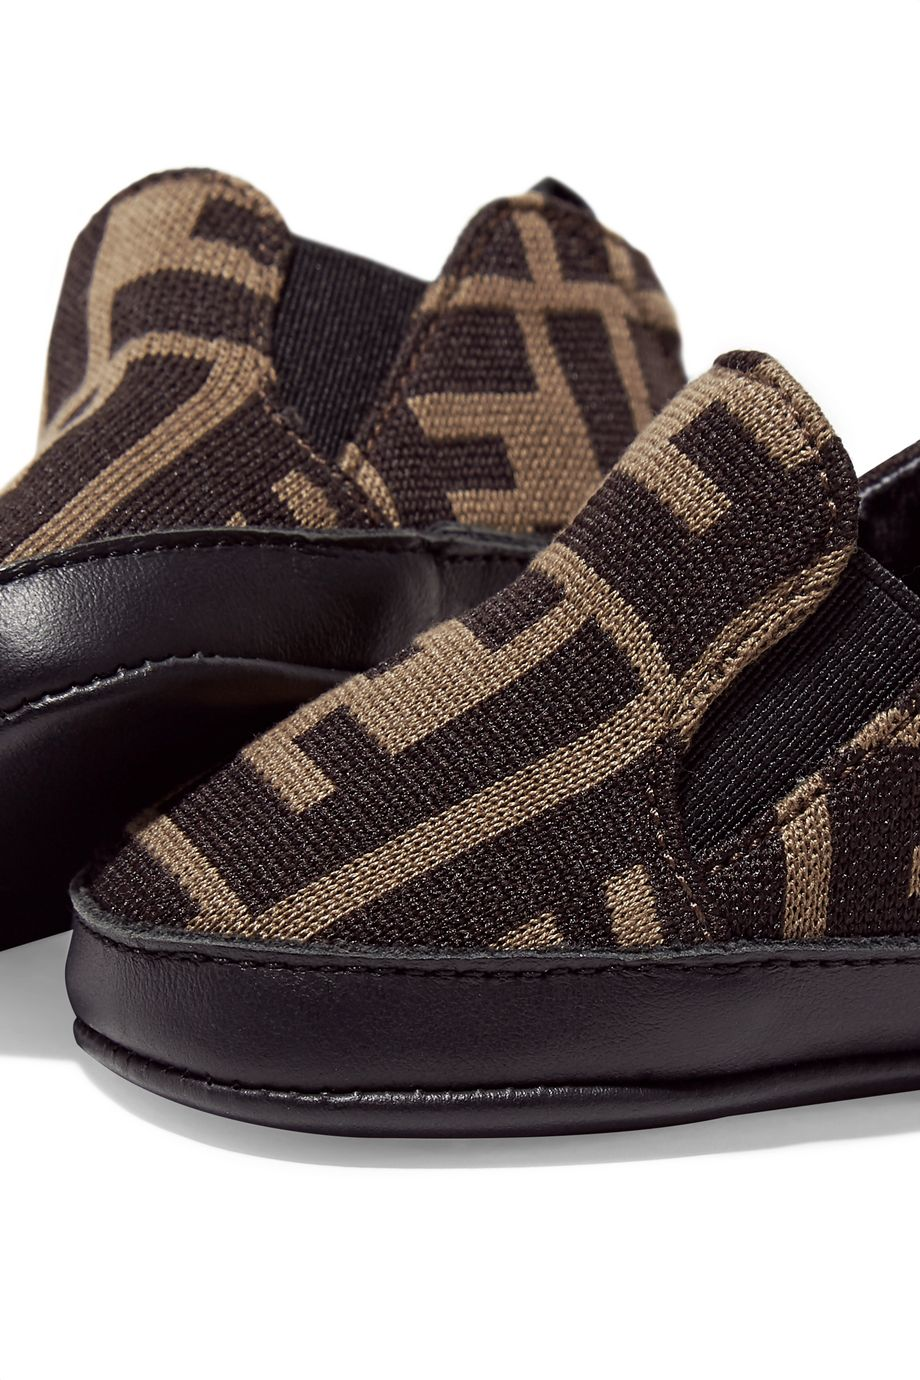 Fendi Kids Leather-trimmed jacquard-knit shoes